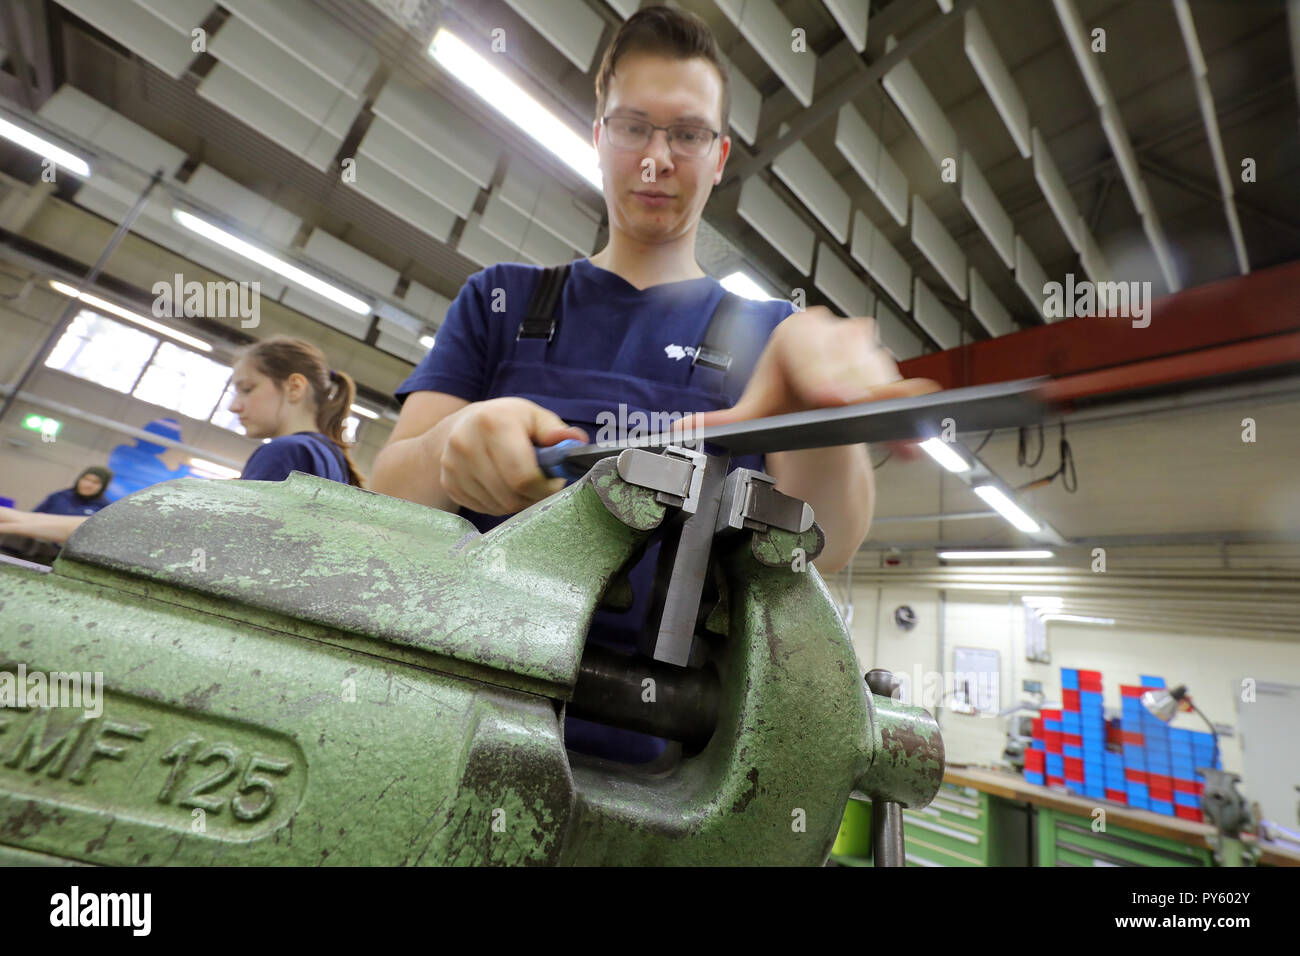 Berlin, Germany. 26th Oct, 2018. At the beginning of a press conference on the campaign 'Training: A Question of Attitude', a trainee in his first year of training is working on a workpiece at the training facility of Berliner Wasserwerke. The campaign aims to recruit more trainees with a migration history. Credit: Wolfgang Kumm/dpa/Alamy Live News - Stock Image